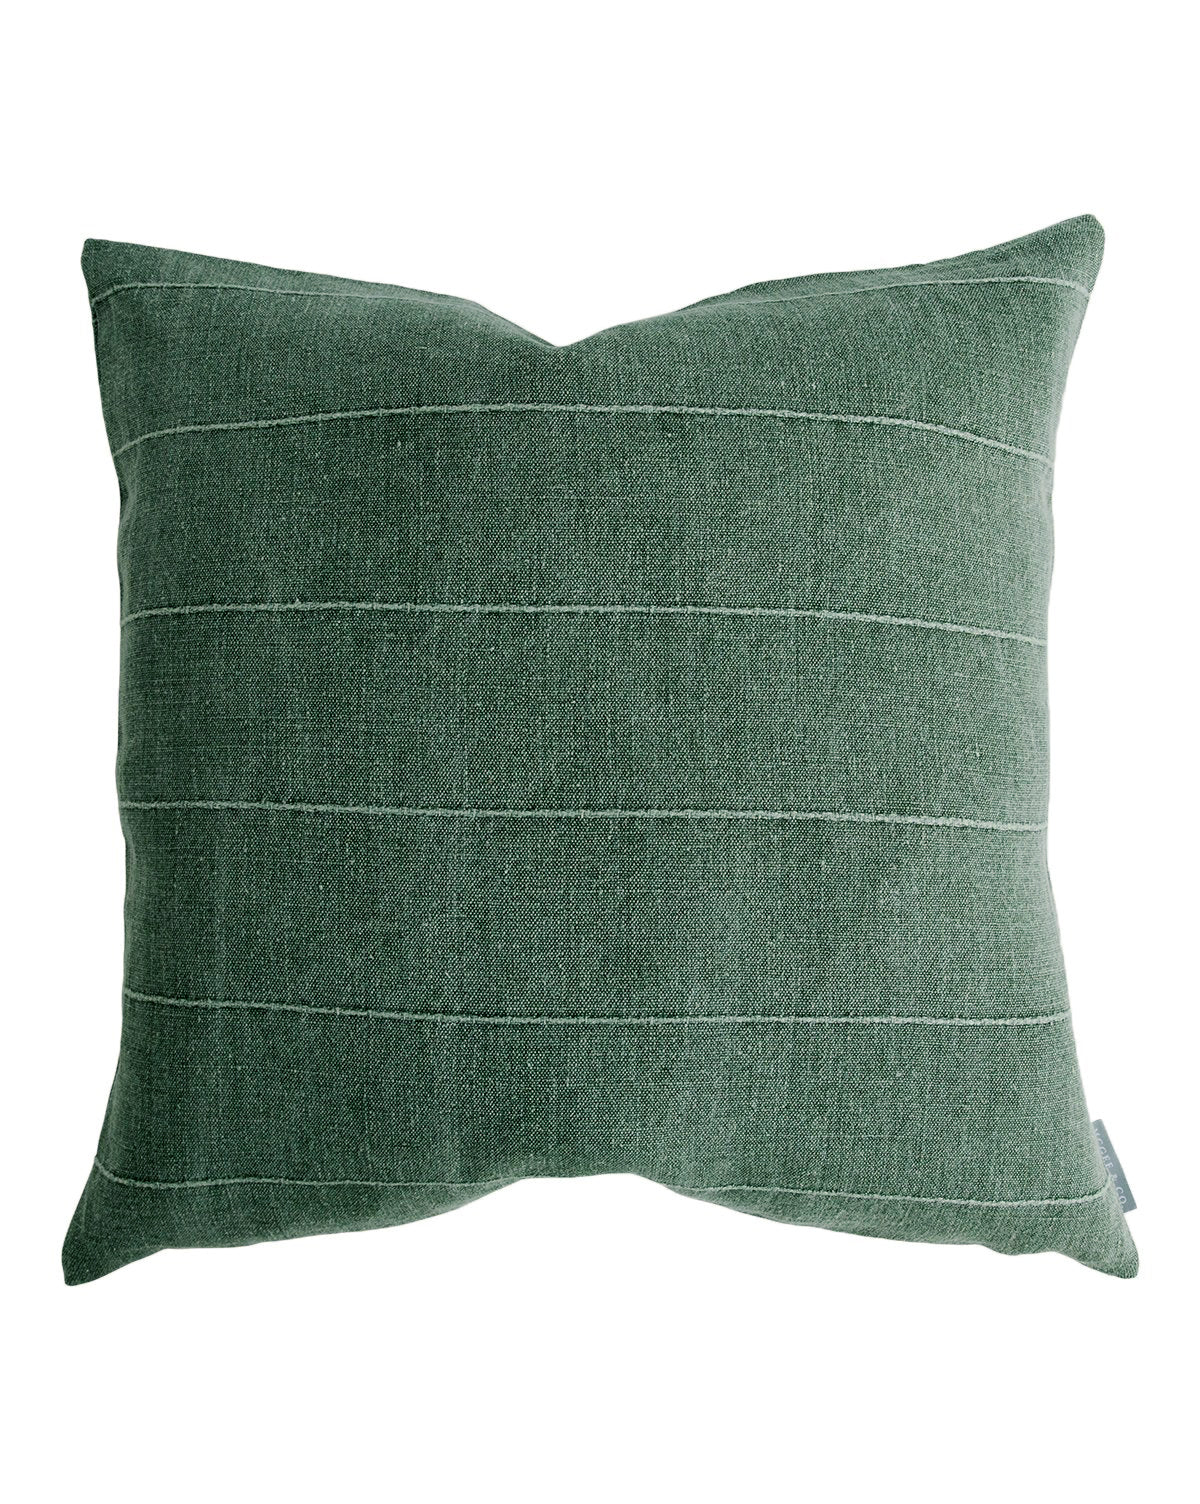 Moody Pillow Cover